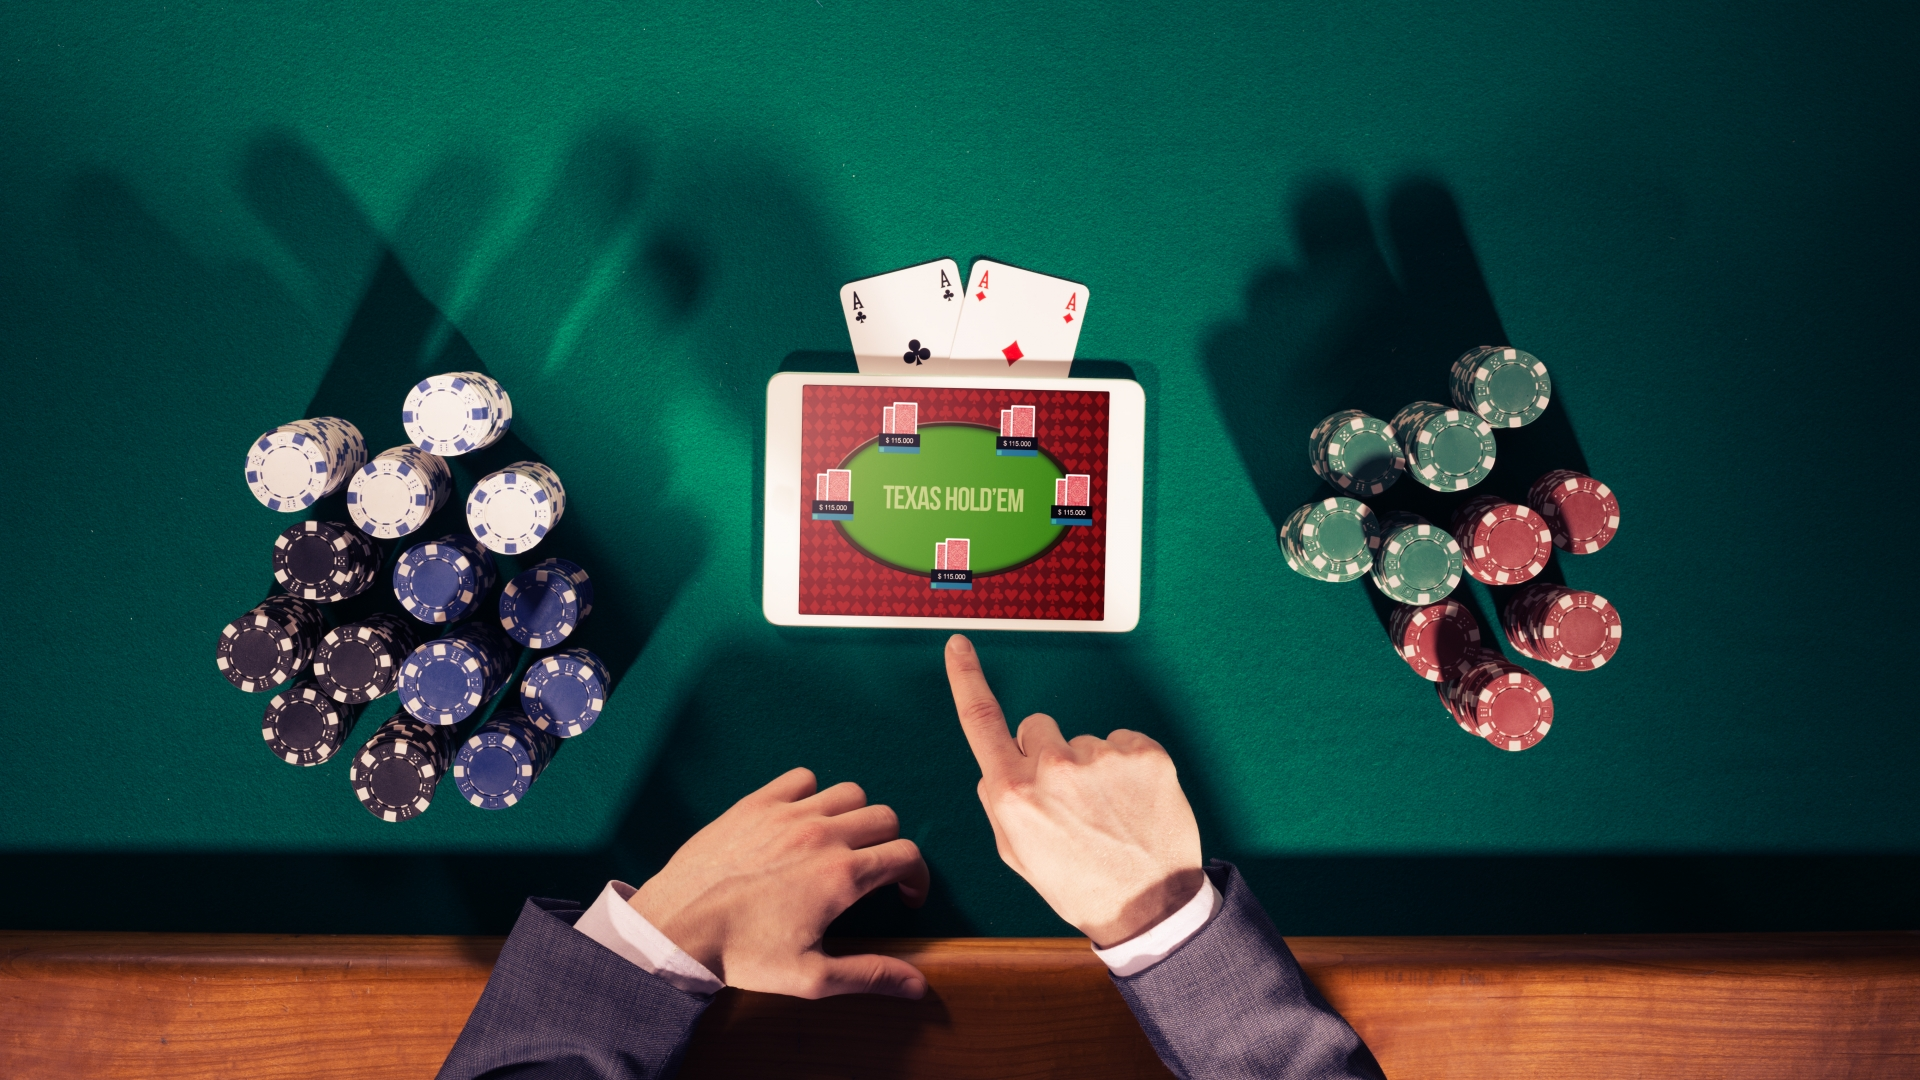 Winning pairs in poker